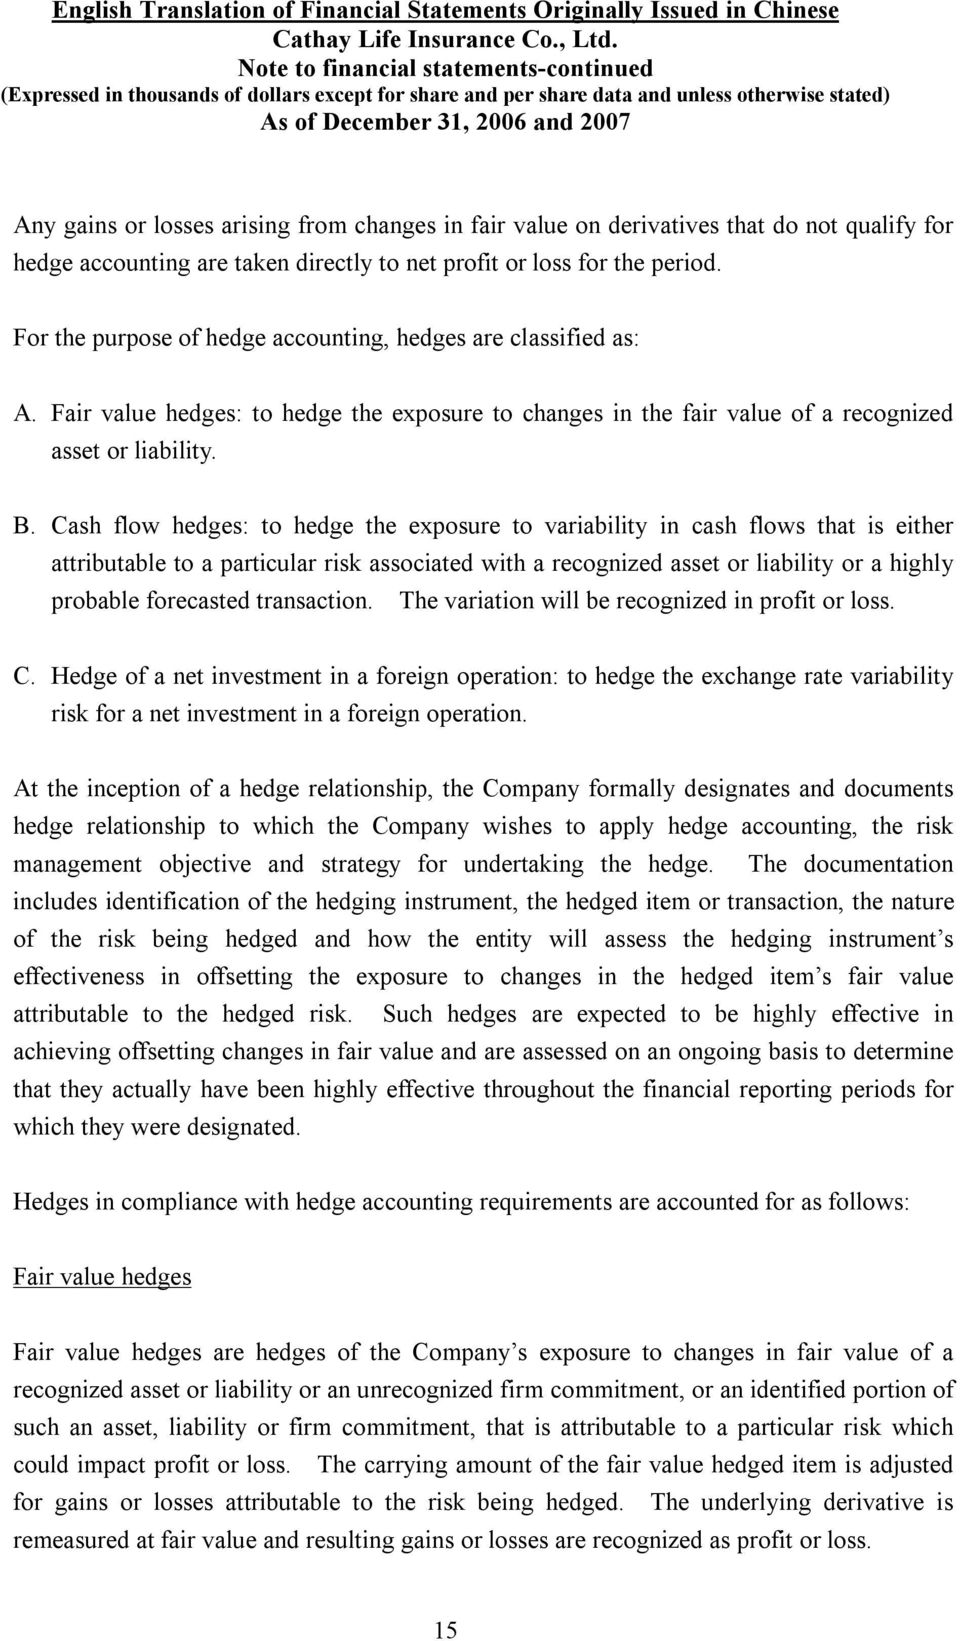 Cash flow hedges: to hedge the exposure to variability in cash flows that is either attributable to a particular risk associated with a recognized asset or liability or a highly probable forecasted